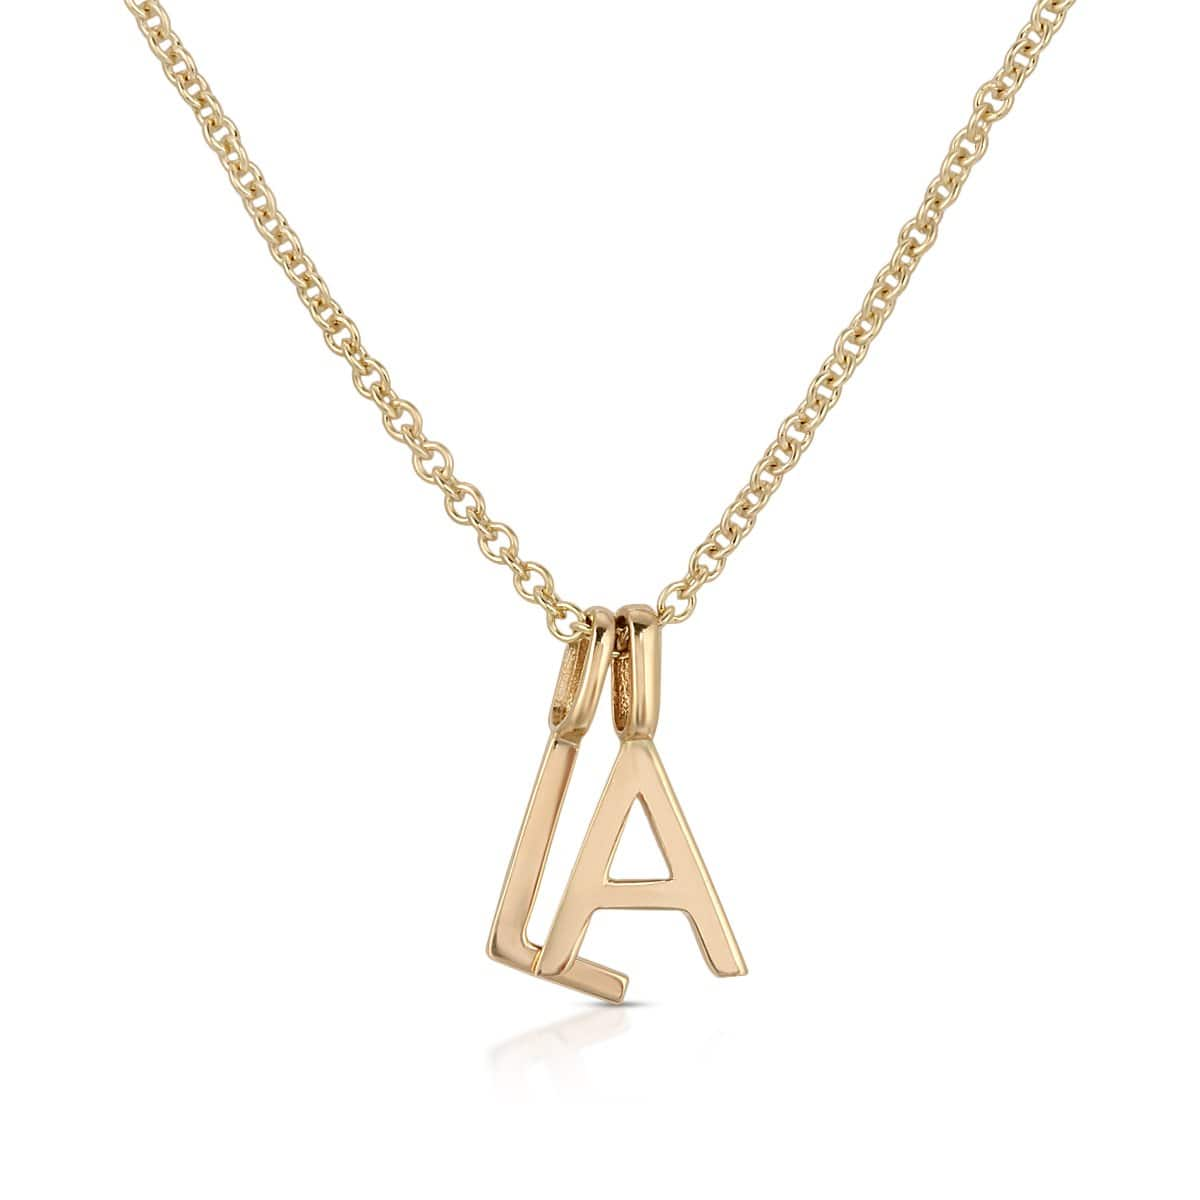 LA Letter charms layered on chain